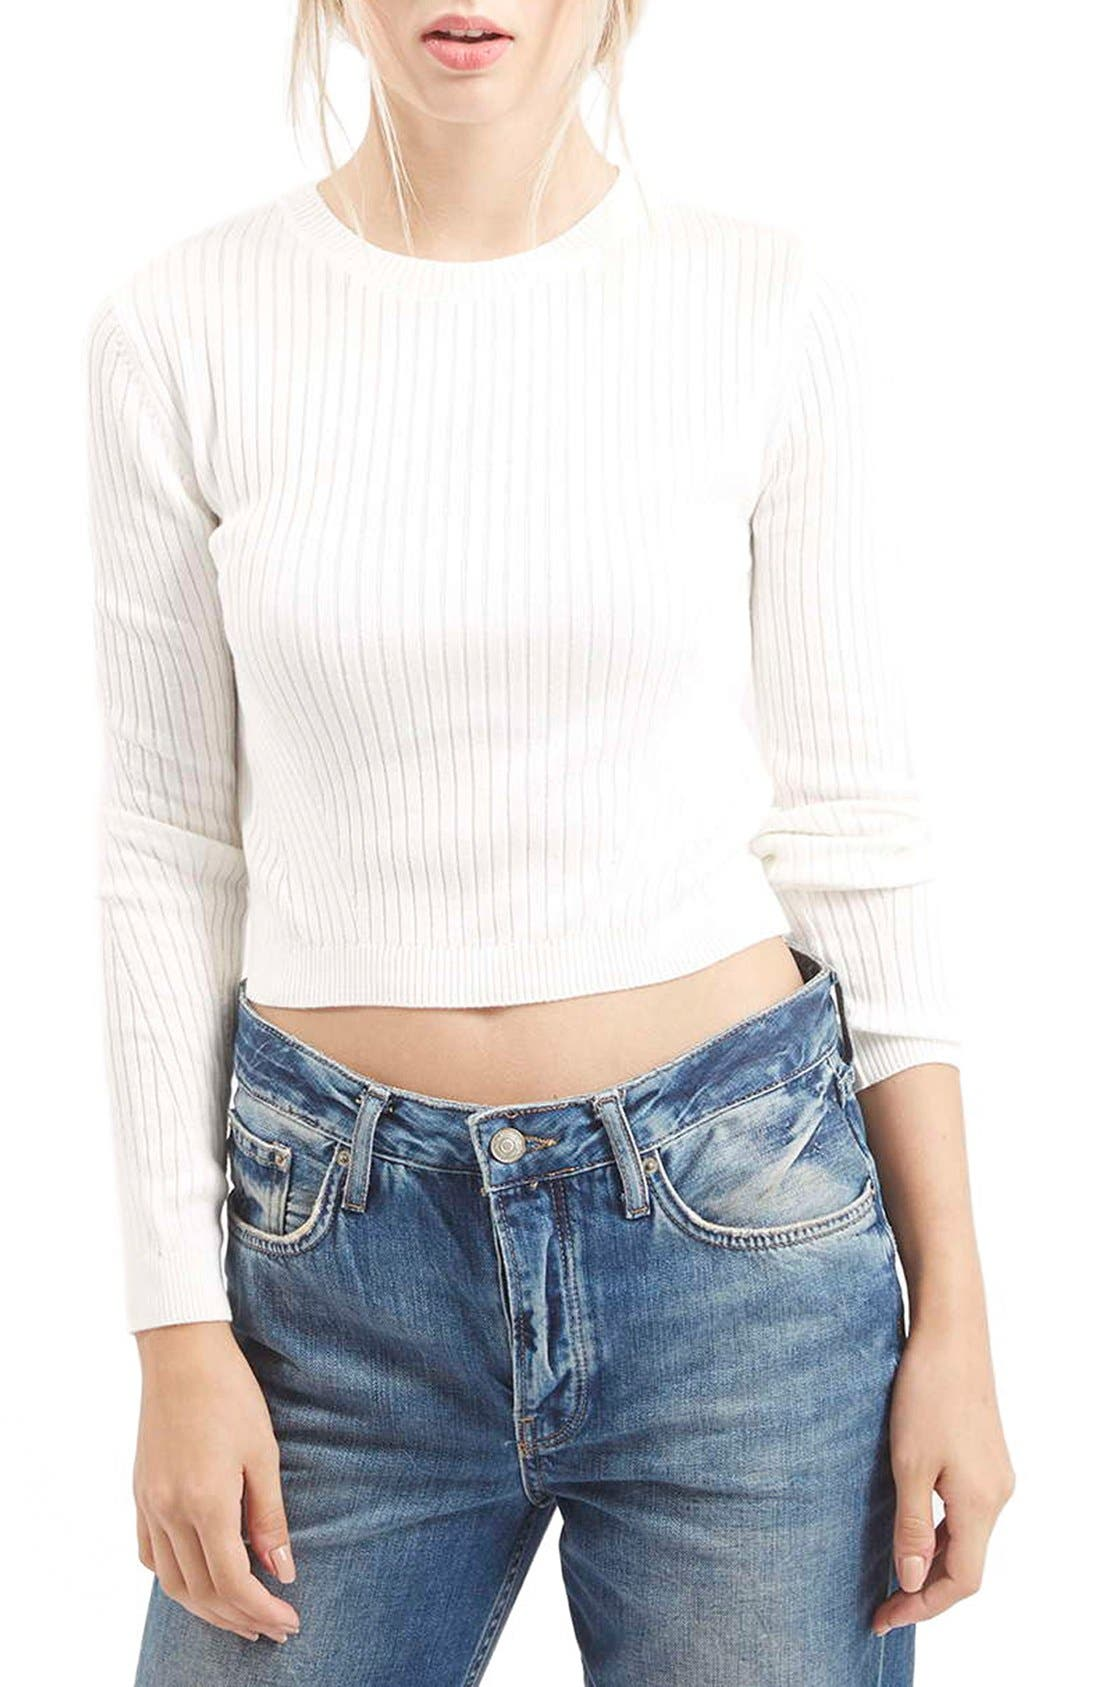 Alternate Image 1 Selected - Topshop Ribbed Long Sleeve Top (Petite)